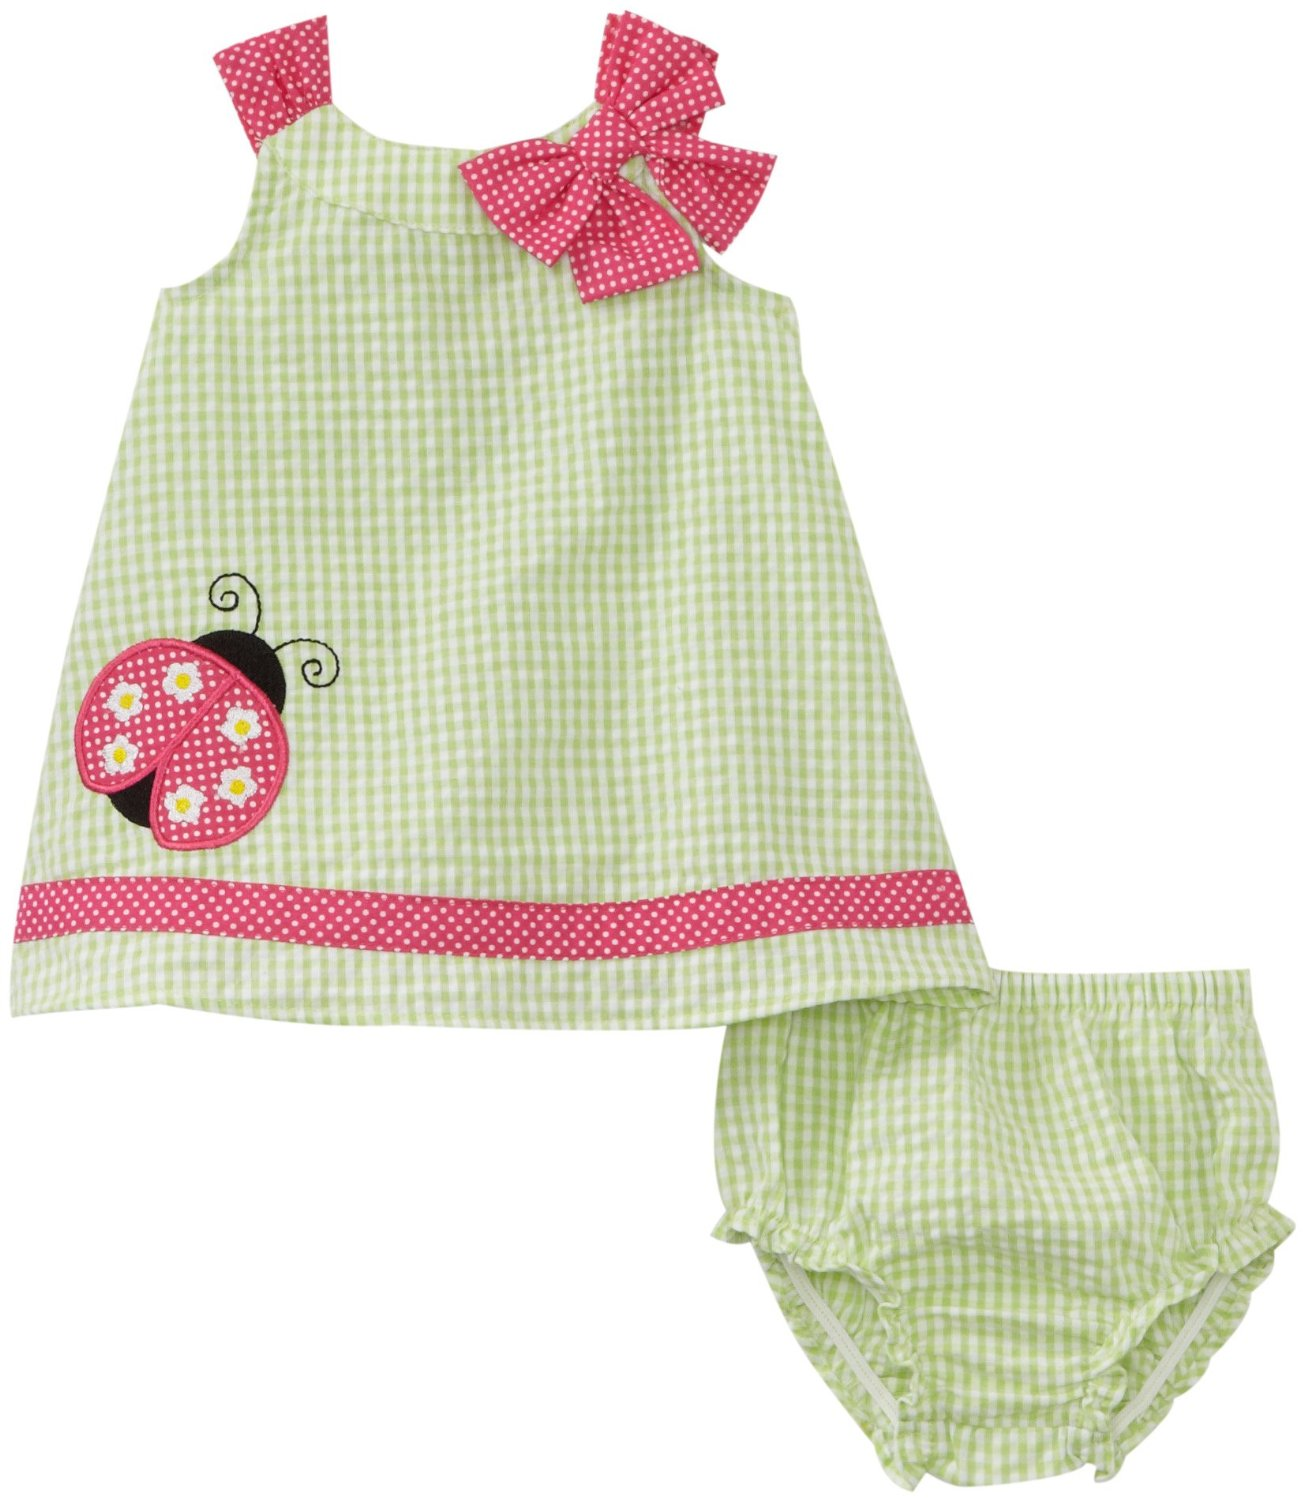 Baby Clothing For Girls